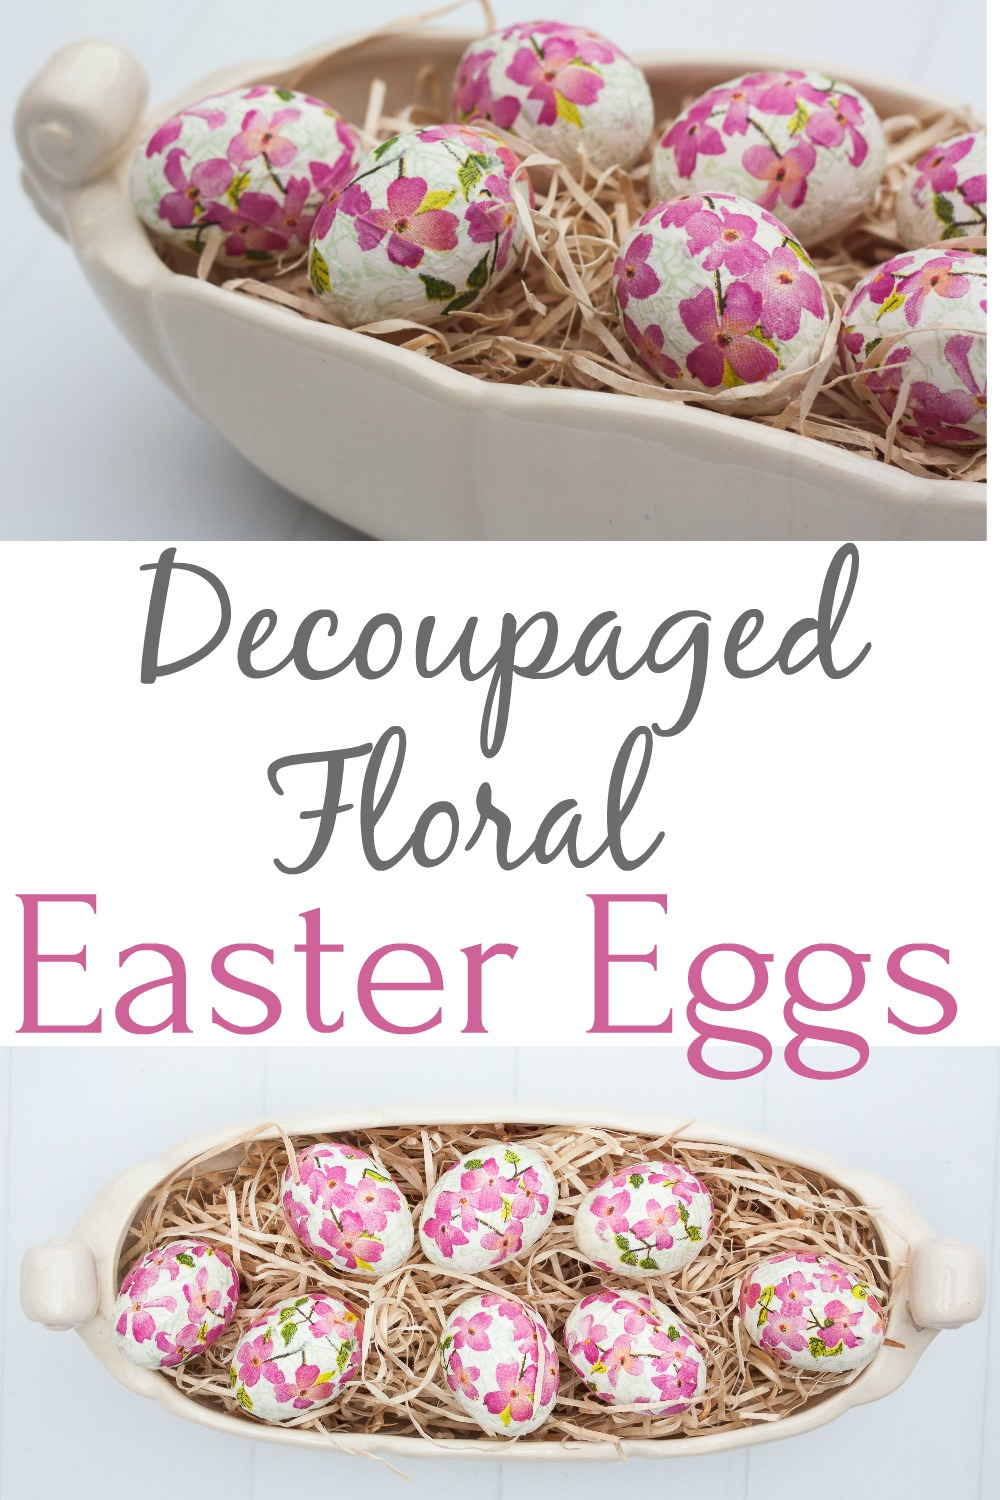 DIY Decoupaged Floral Easter Eggs - Learn how to make decoupaged floral eggs using napkins and Mod Podge.  This is an easy craft that can be saved and enjoyed each year.  #easter #eastercraft #eastereggs #diyeastereggs #easterdecor via @spaula